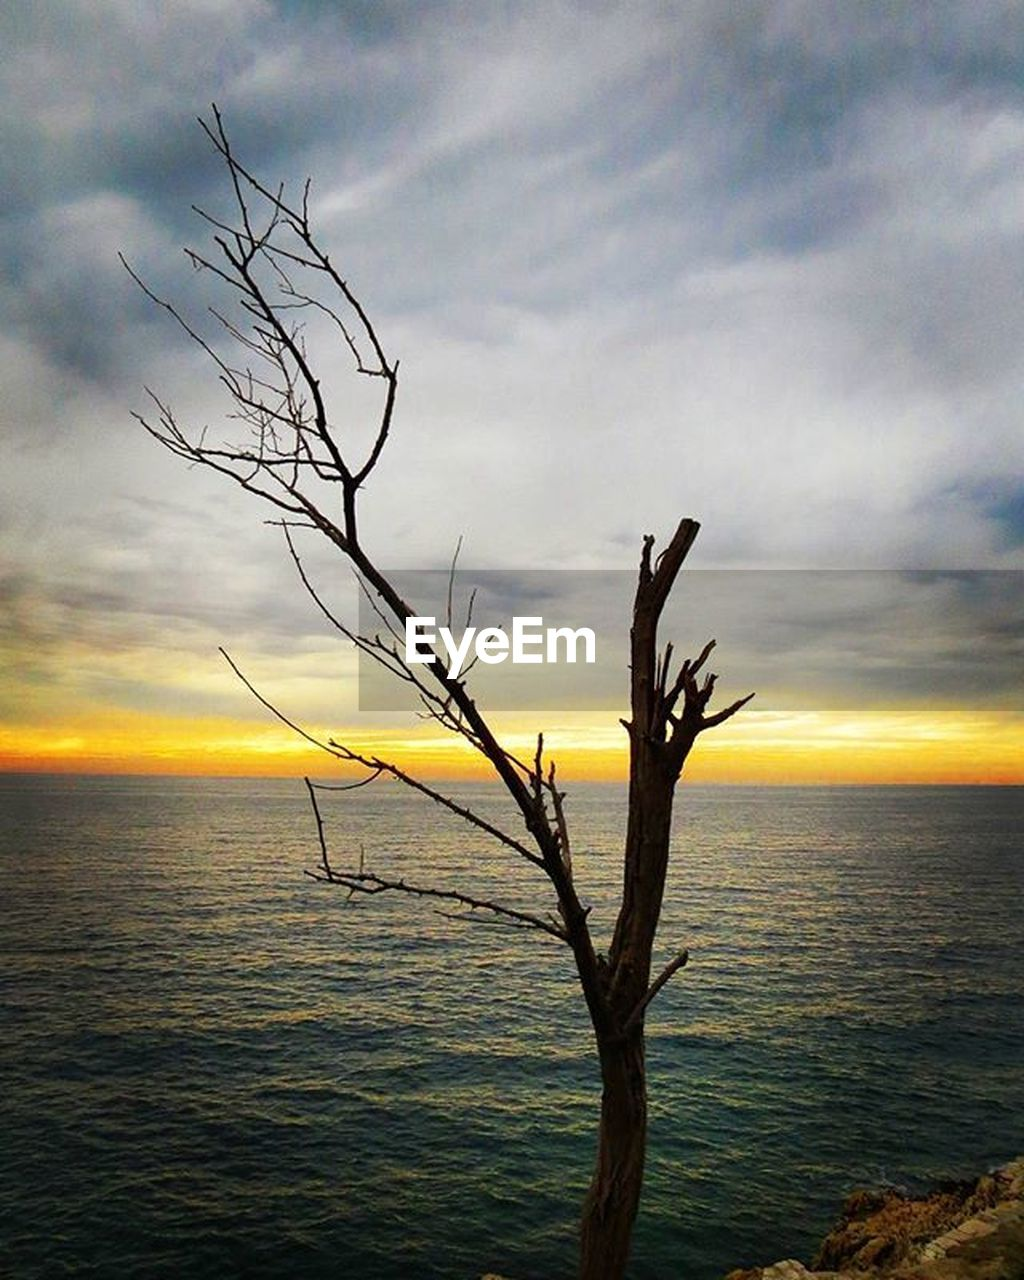 nature, sunset, tranquil scene, beauty in nature, tranquility, sky, scenics, sea, horizon over water, water, bare tree, outdoors, no people, cloud - sky, silhouette, tree, branch, dead tree, day